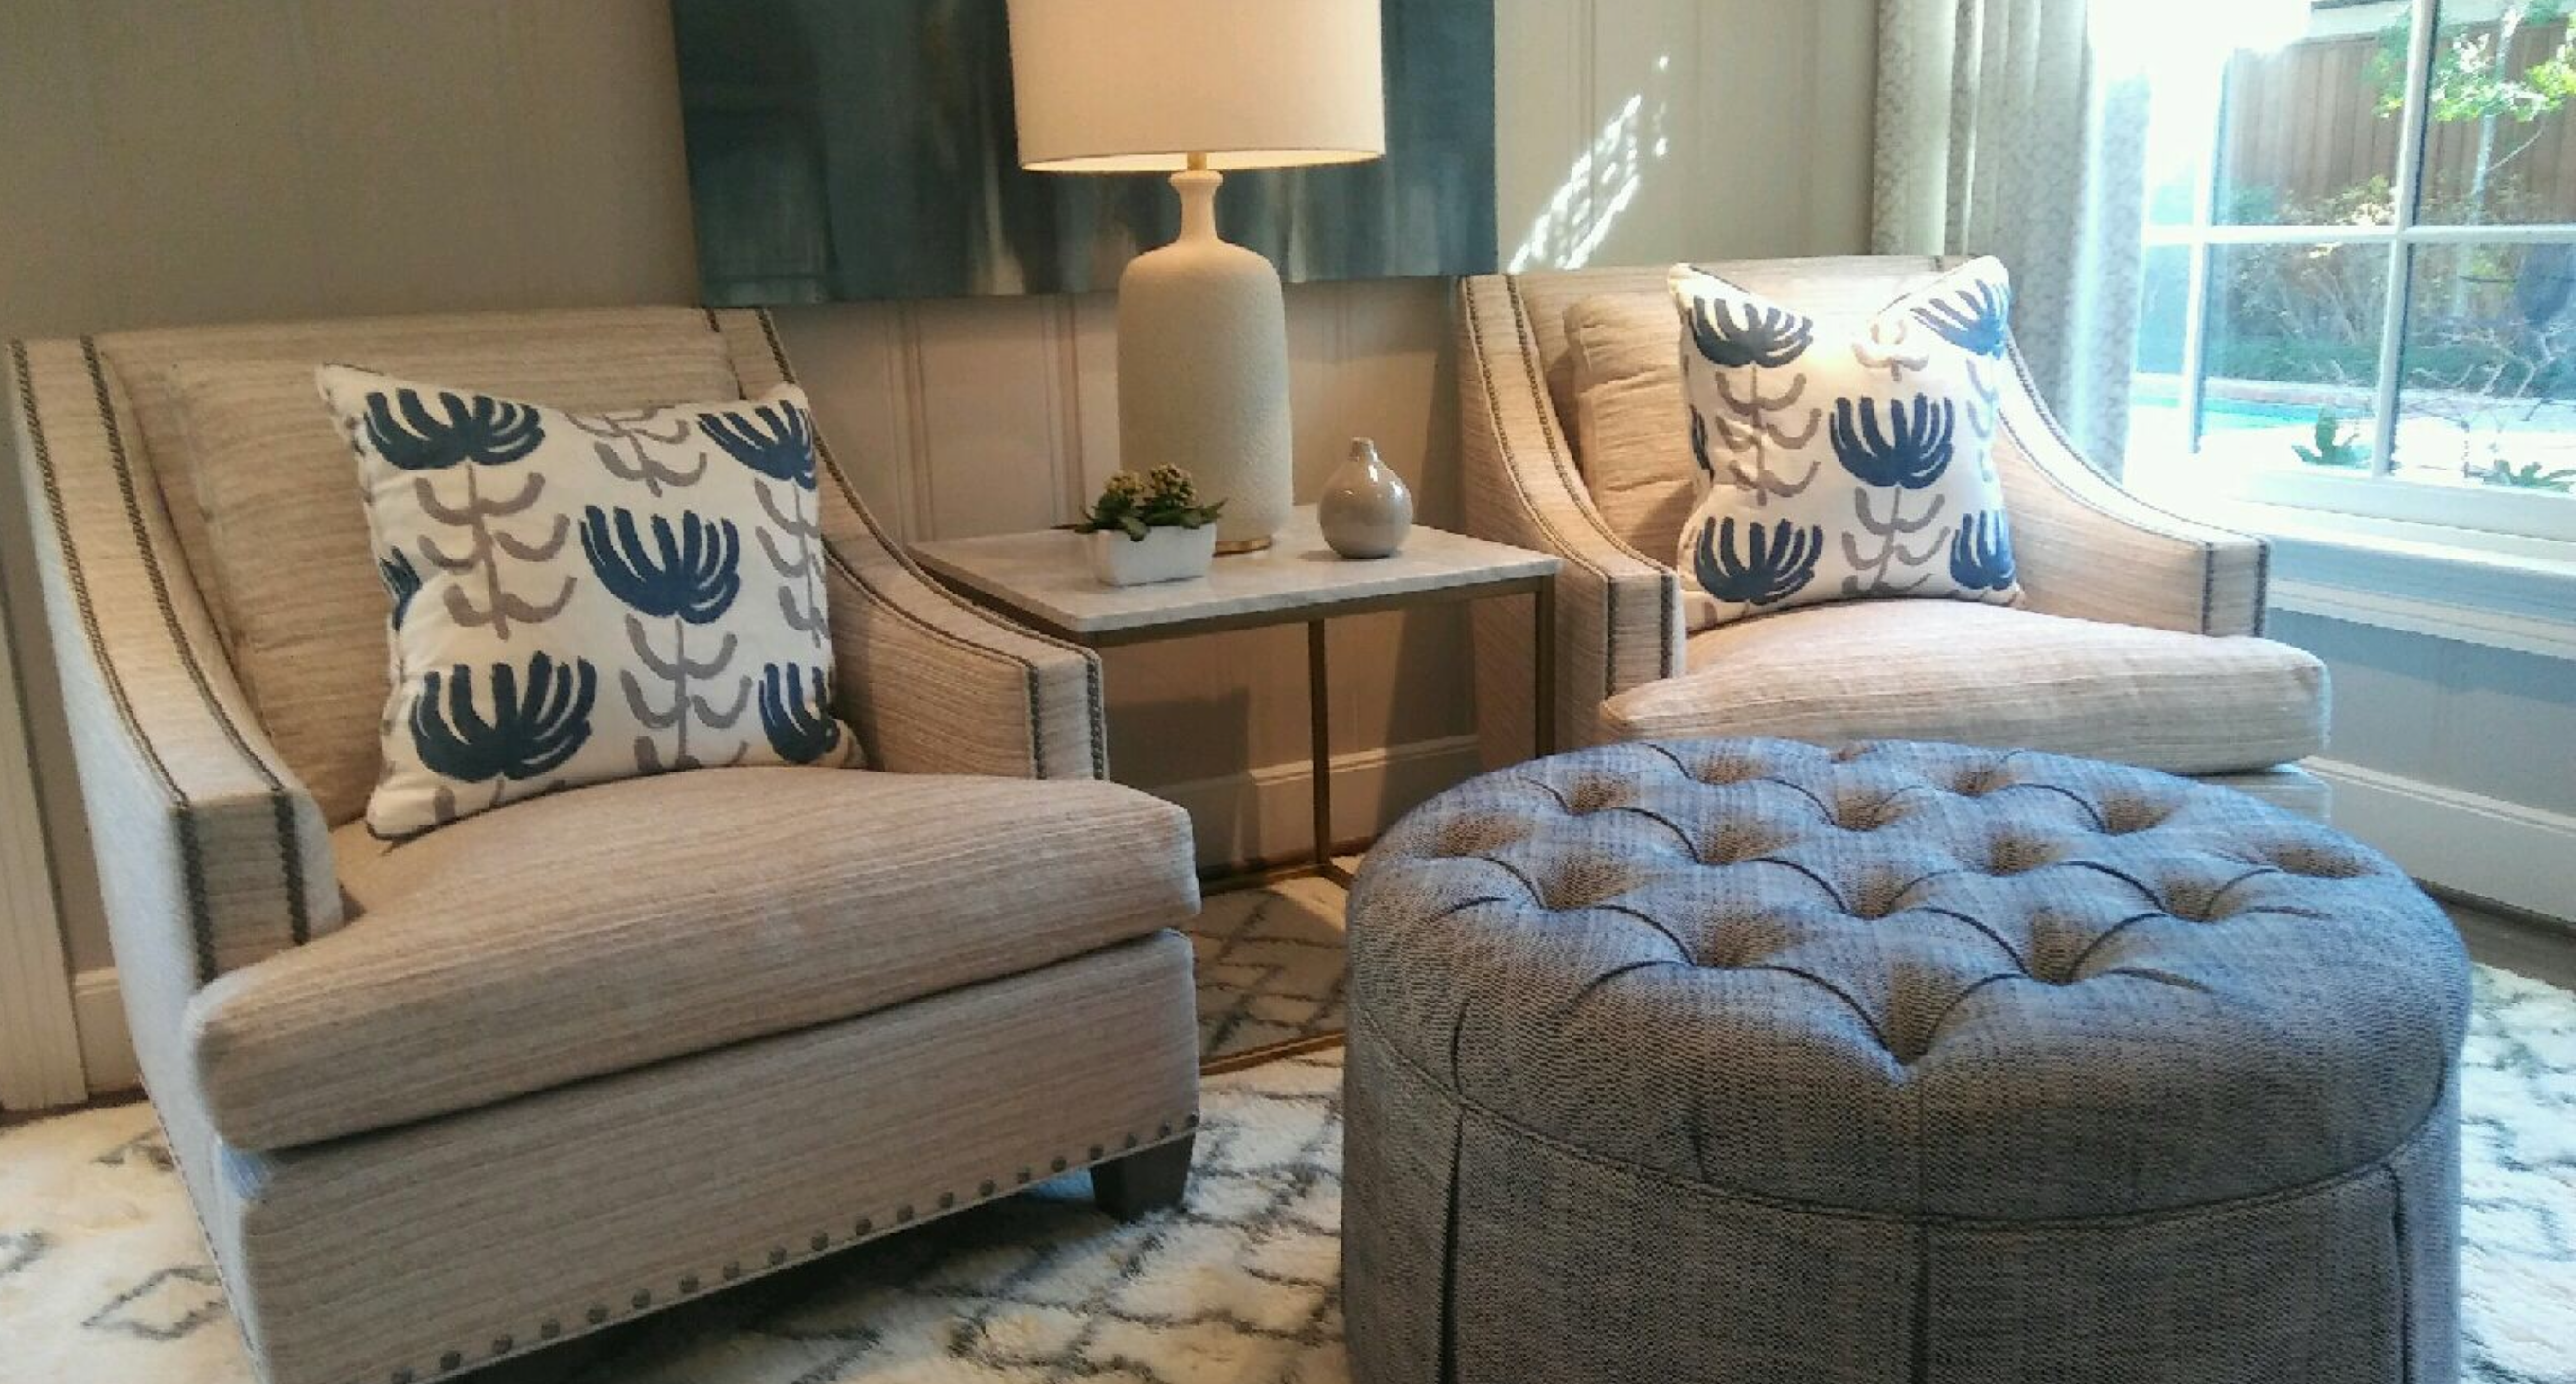 G d upholstery coupons near me in irving 8coupons for Furniture stores in irving tx